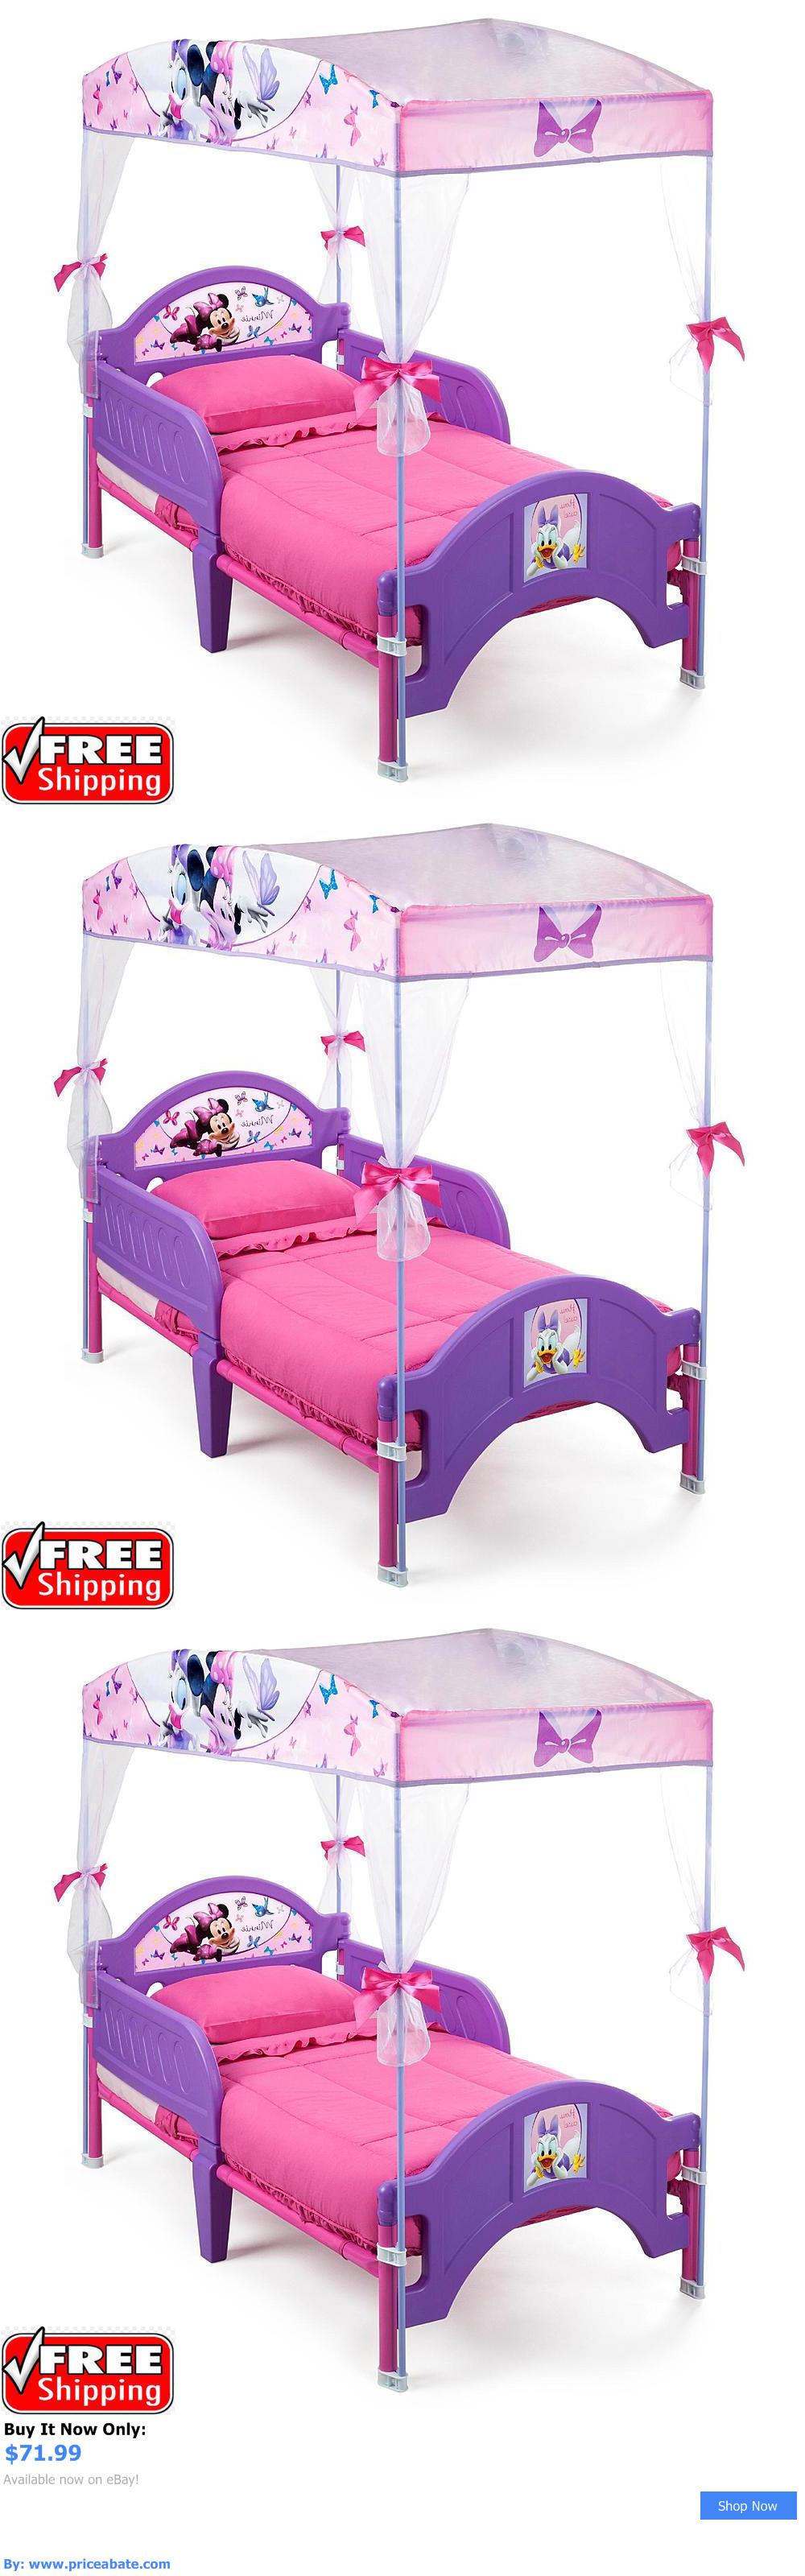 Kids Furniture: Toddler Bed For Girls With Canopy Minnie Mouse Daisy Duck Disney Princess New BUY IT NOW ONLY: $71.99 #priceabateKidsFurniture OR #priceabate